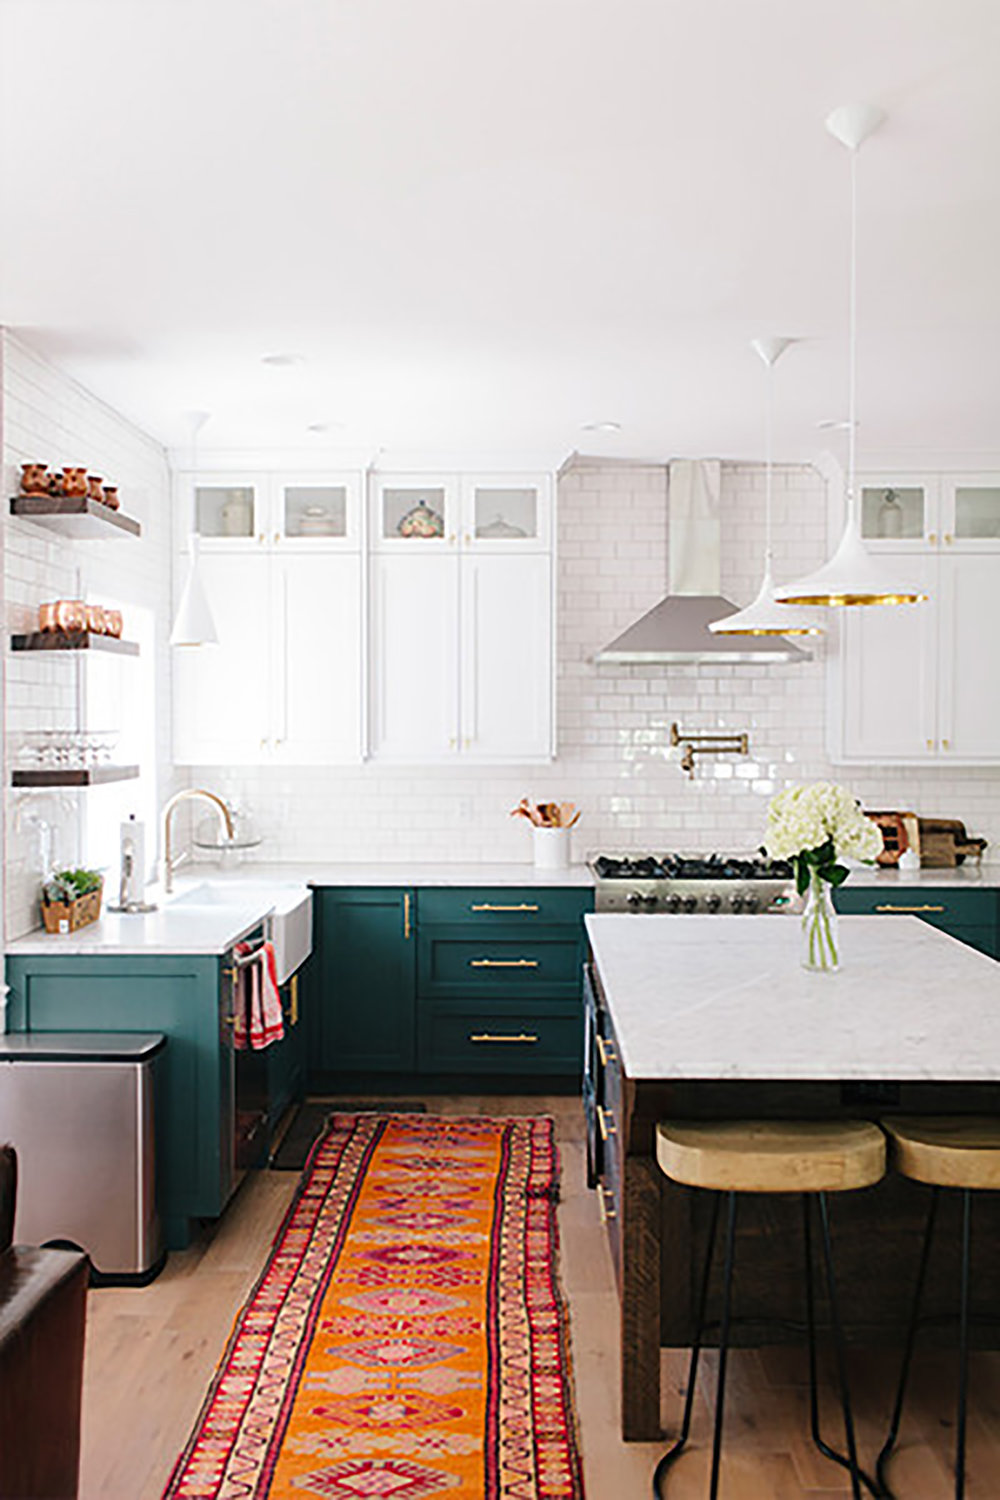 Two Toned Kitchen -Ali Hynek 2.jpg